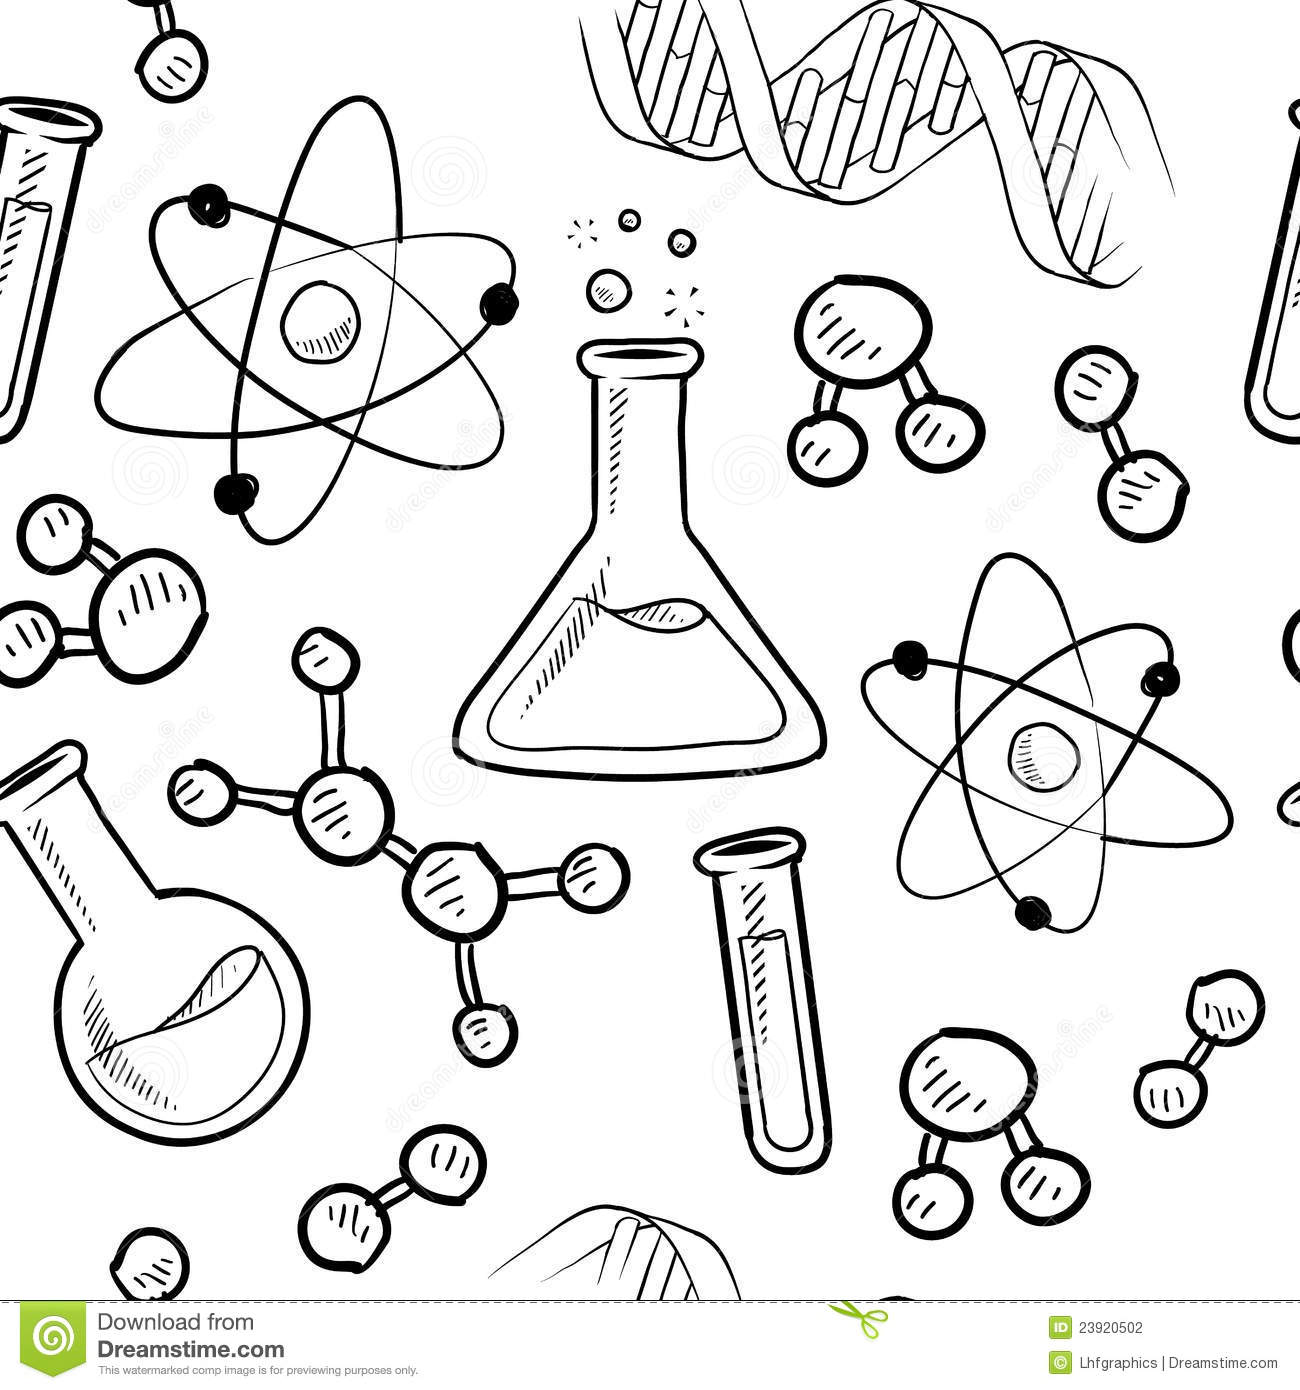 doodle style seamless science or laborator background illustration in